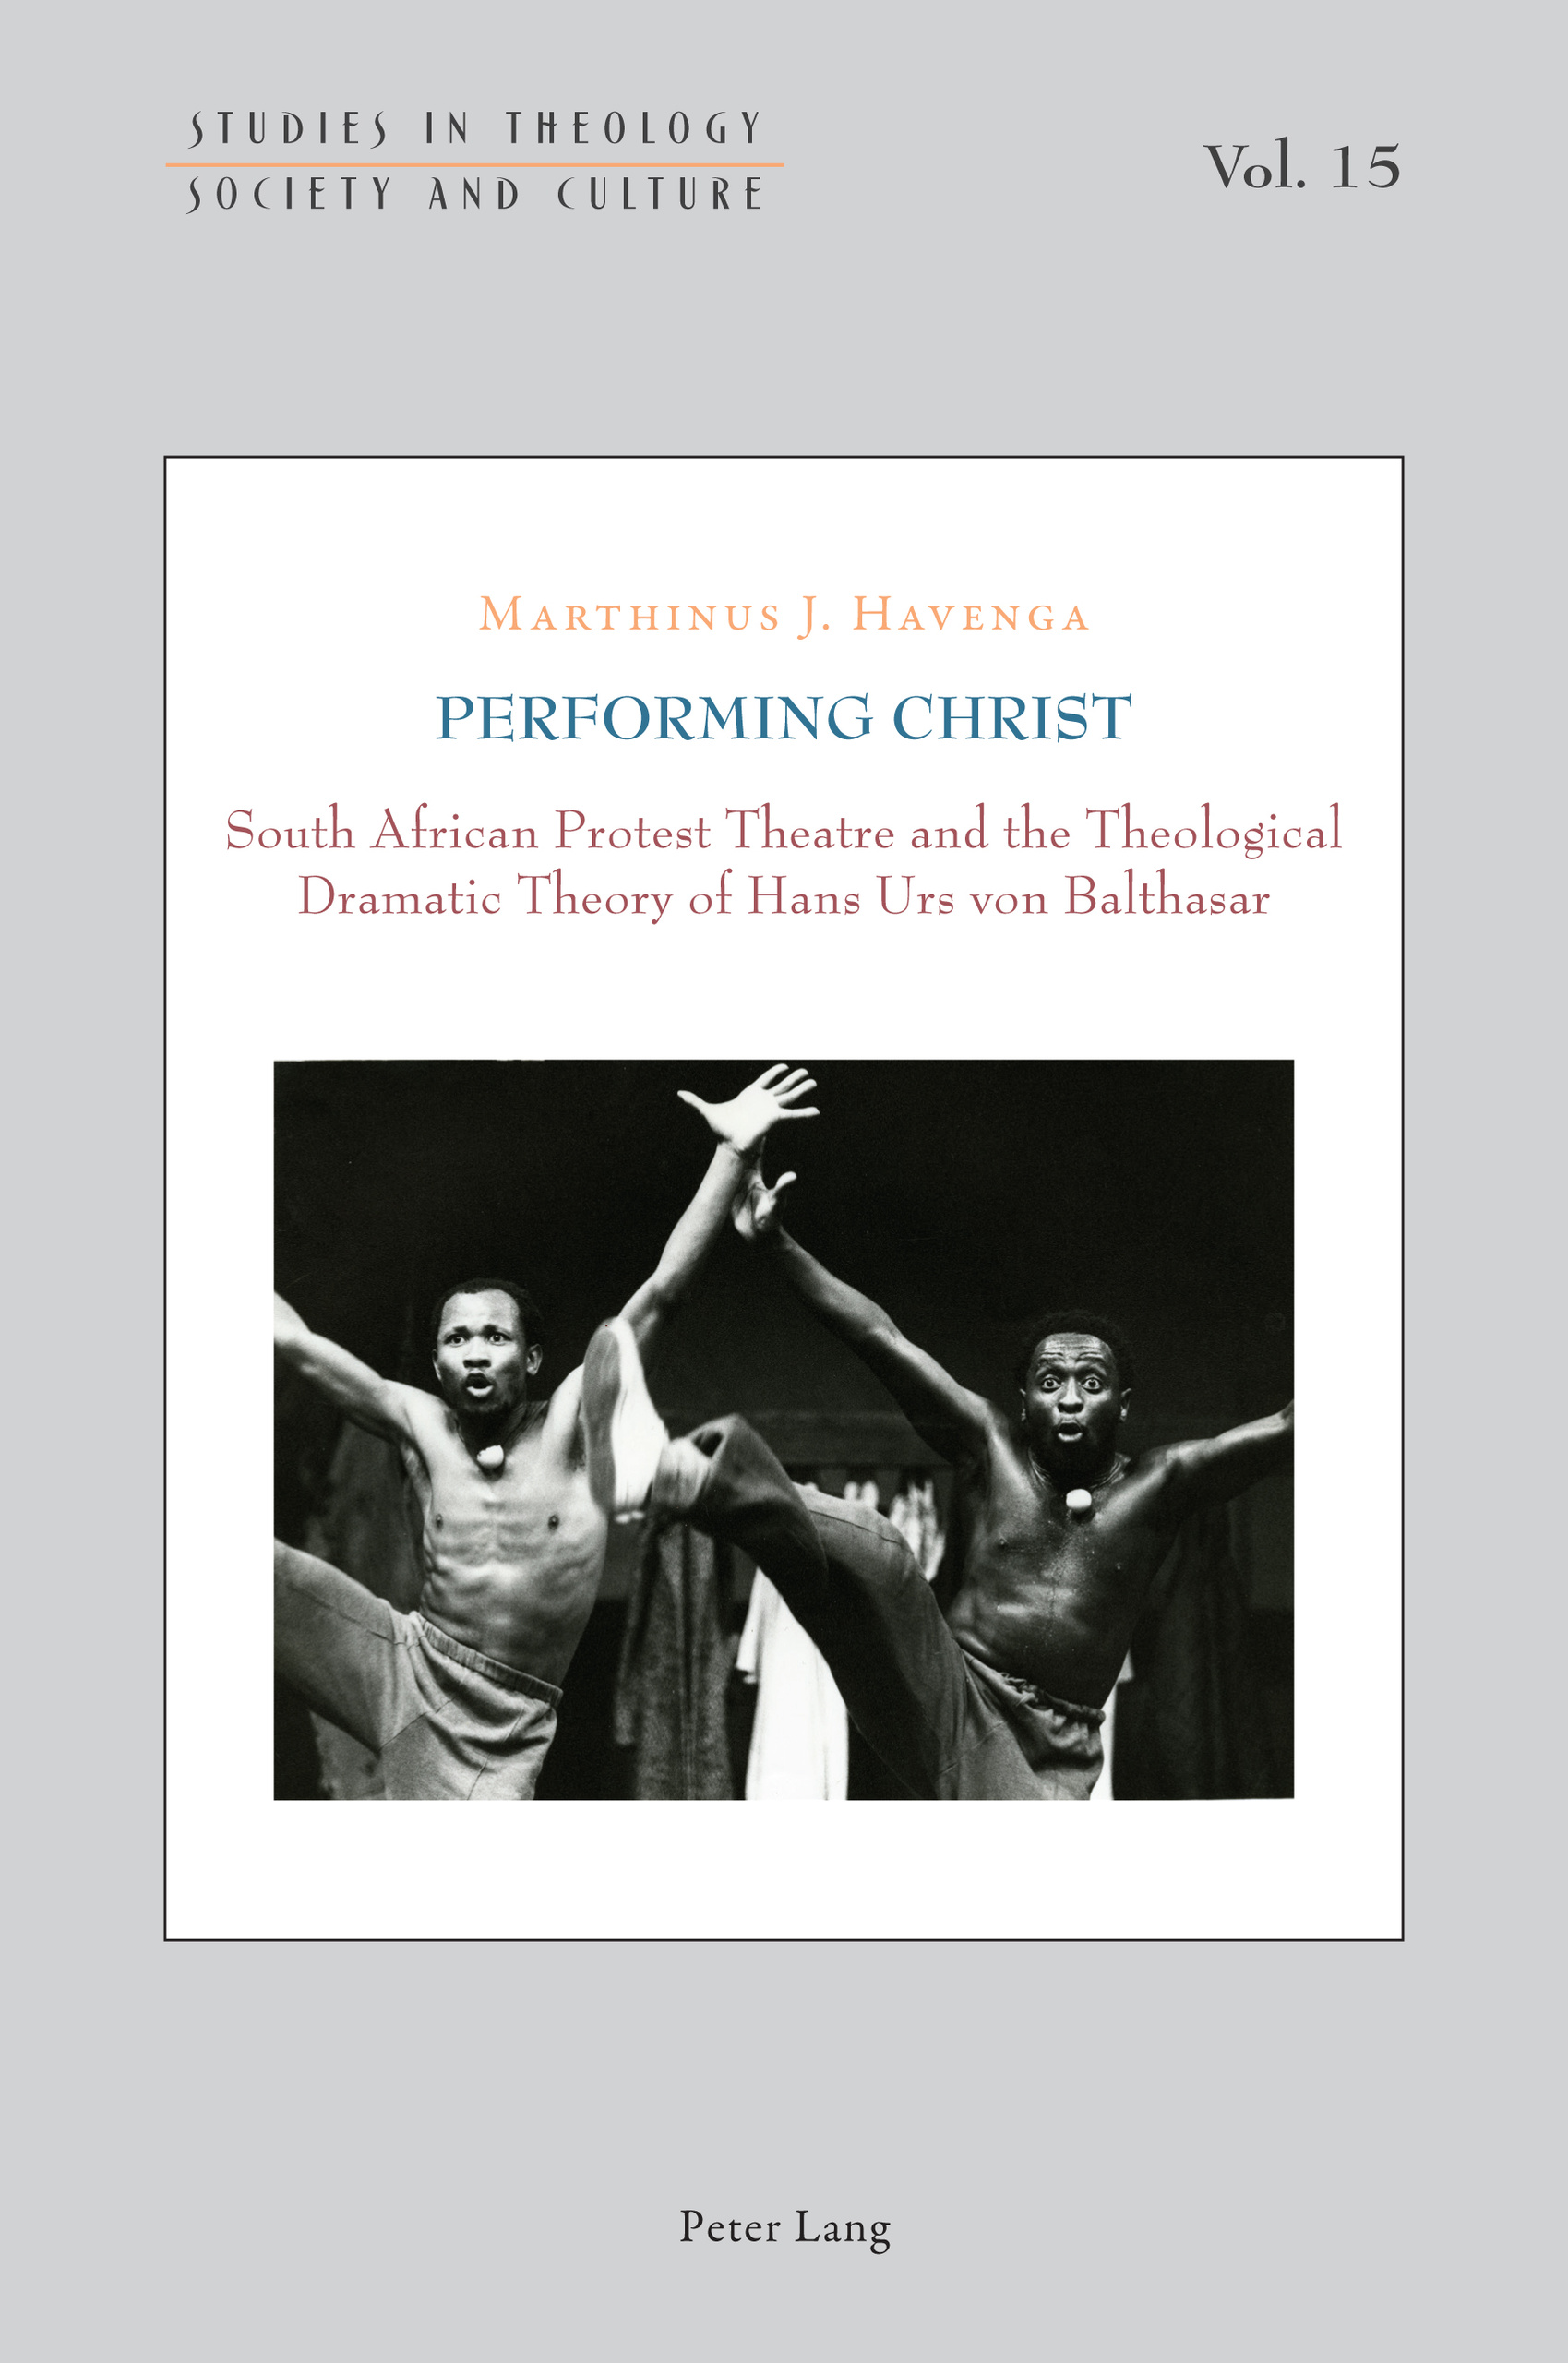 Title: Performing Christ